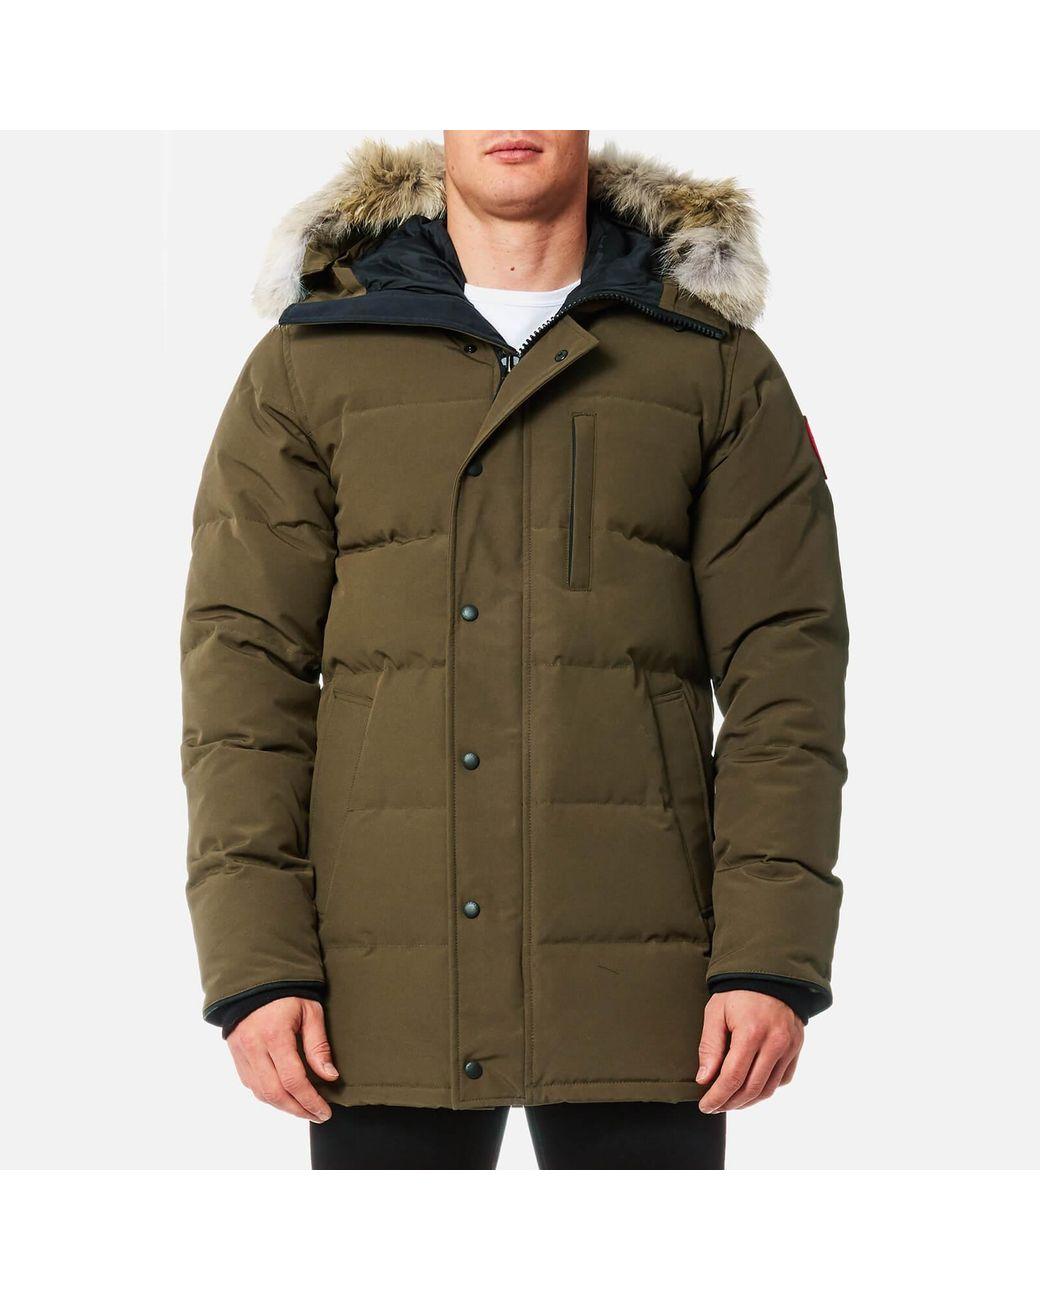 600b5b348a9d Canada Goose Carson Parka Jacket in Green for Men - Lyst